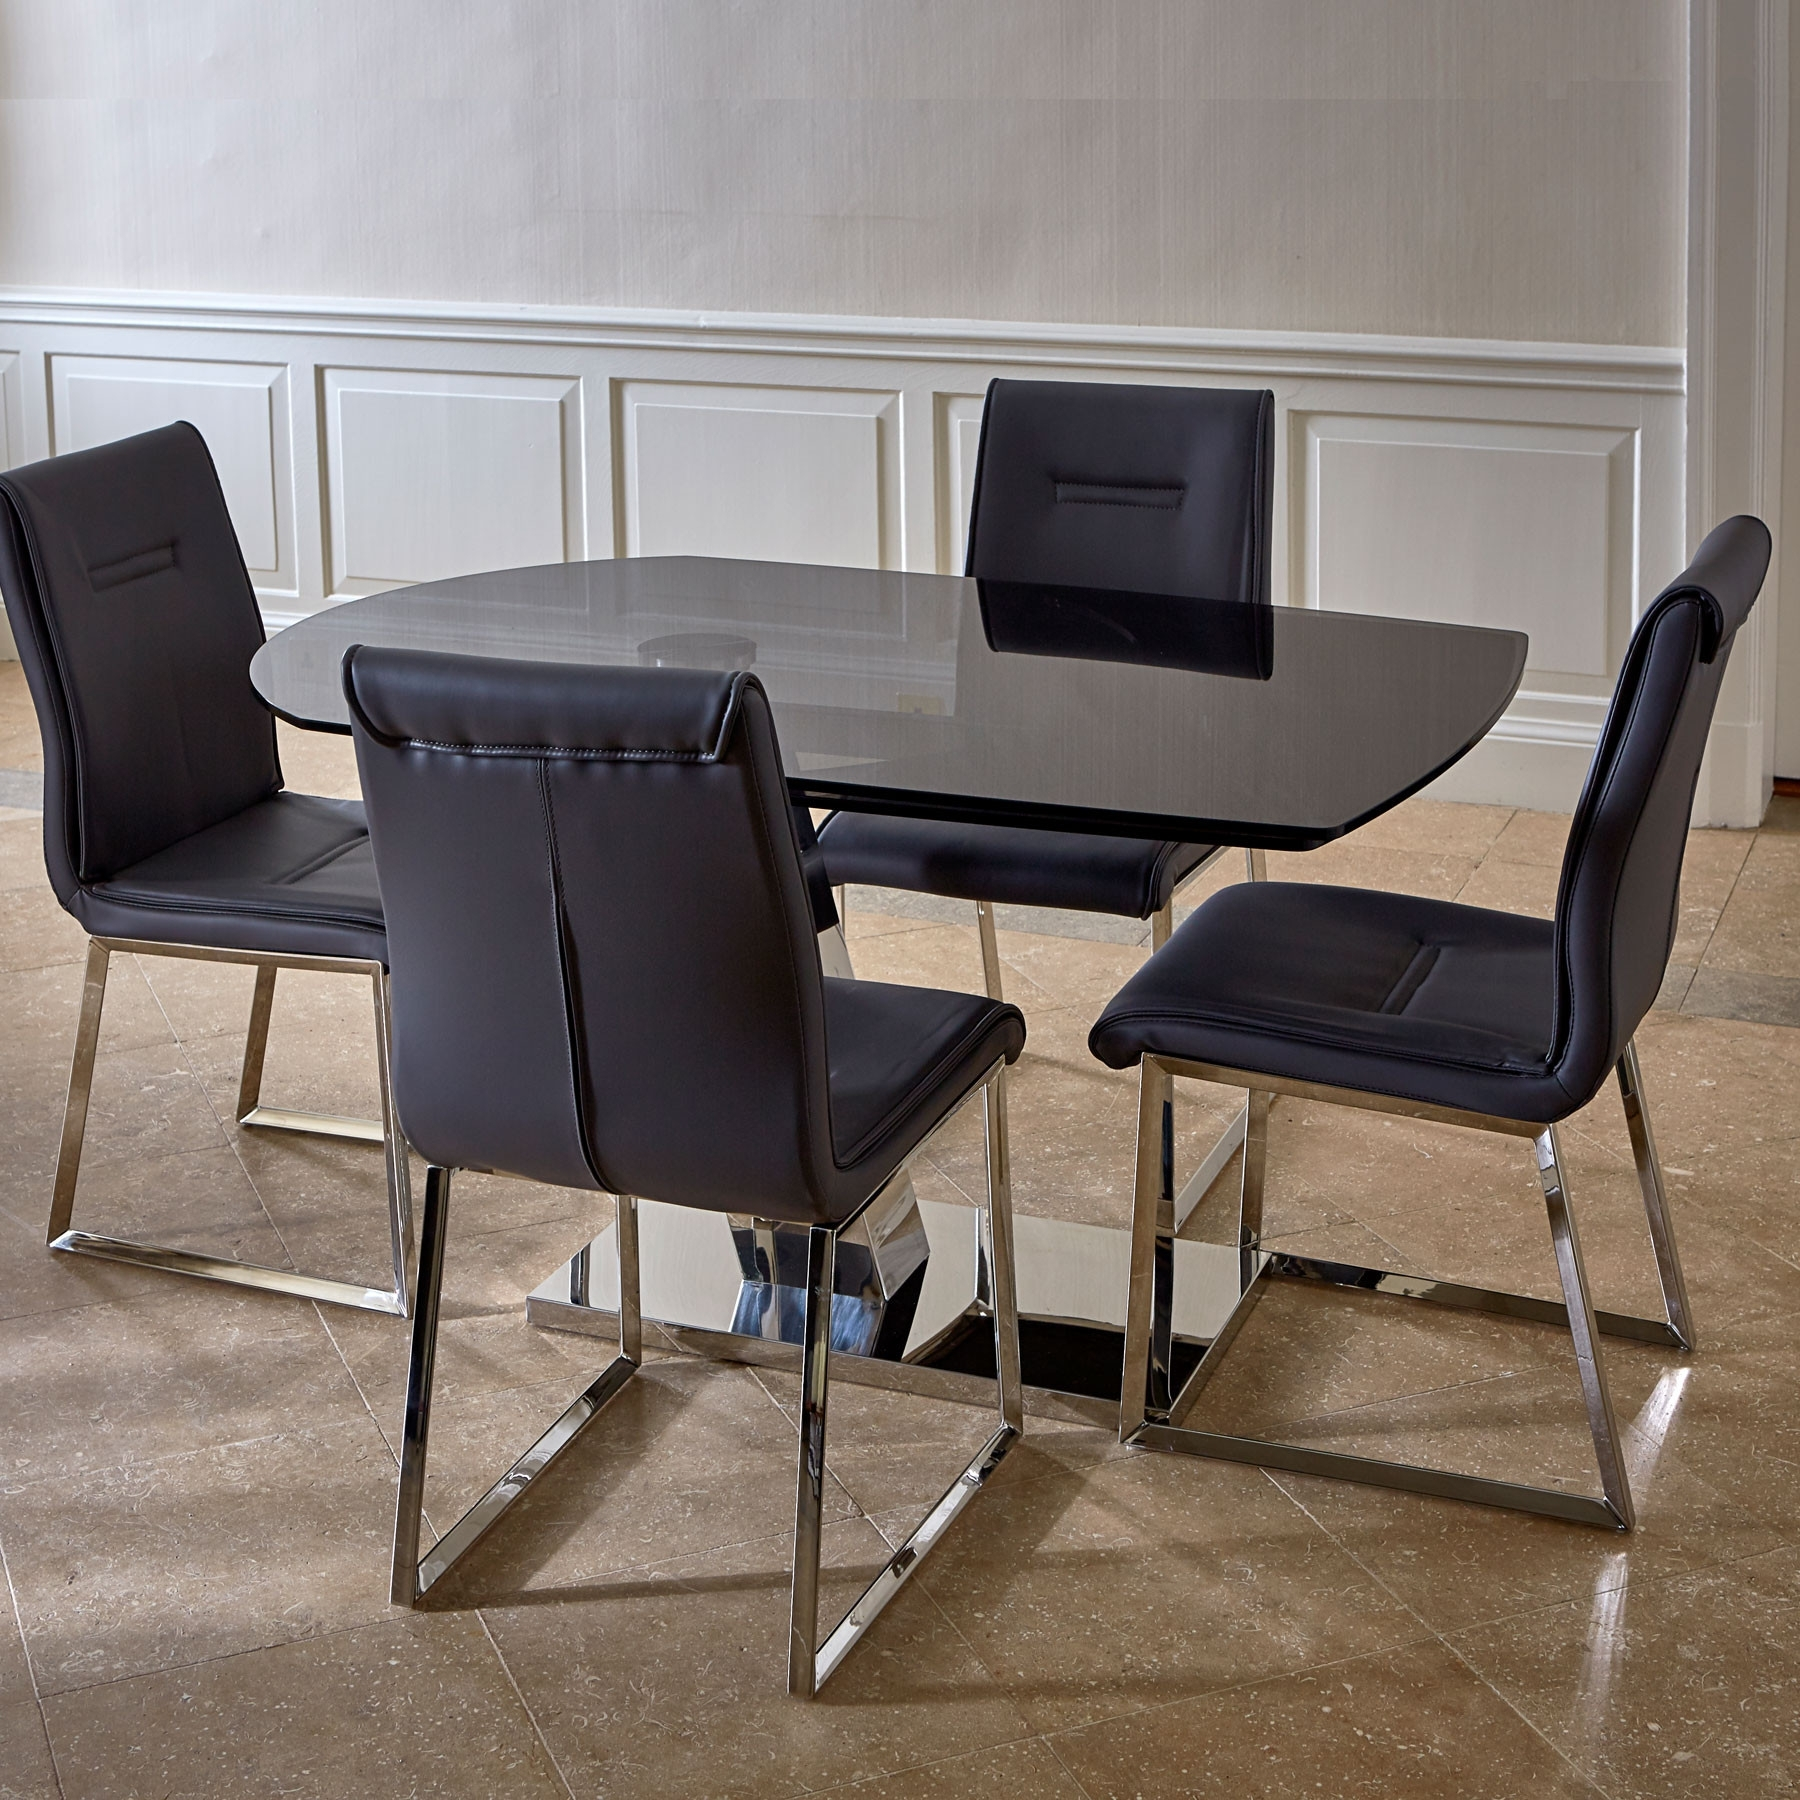 2018 Smoked Glass Dining Tables And Chairs inside Zena Extending Smoked Glass Dining Table & 4 Chairs